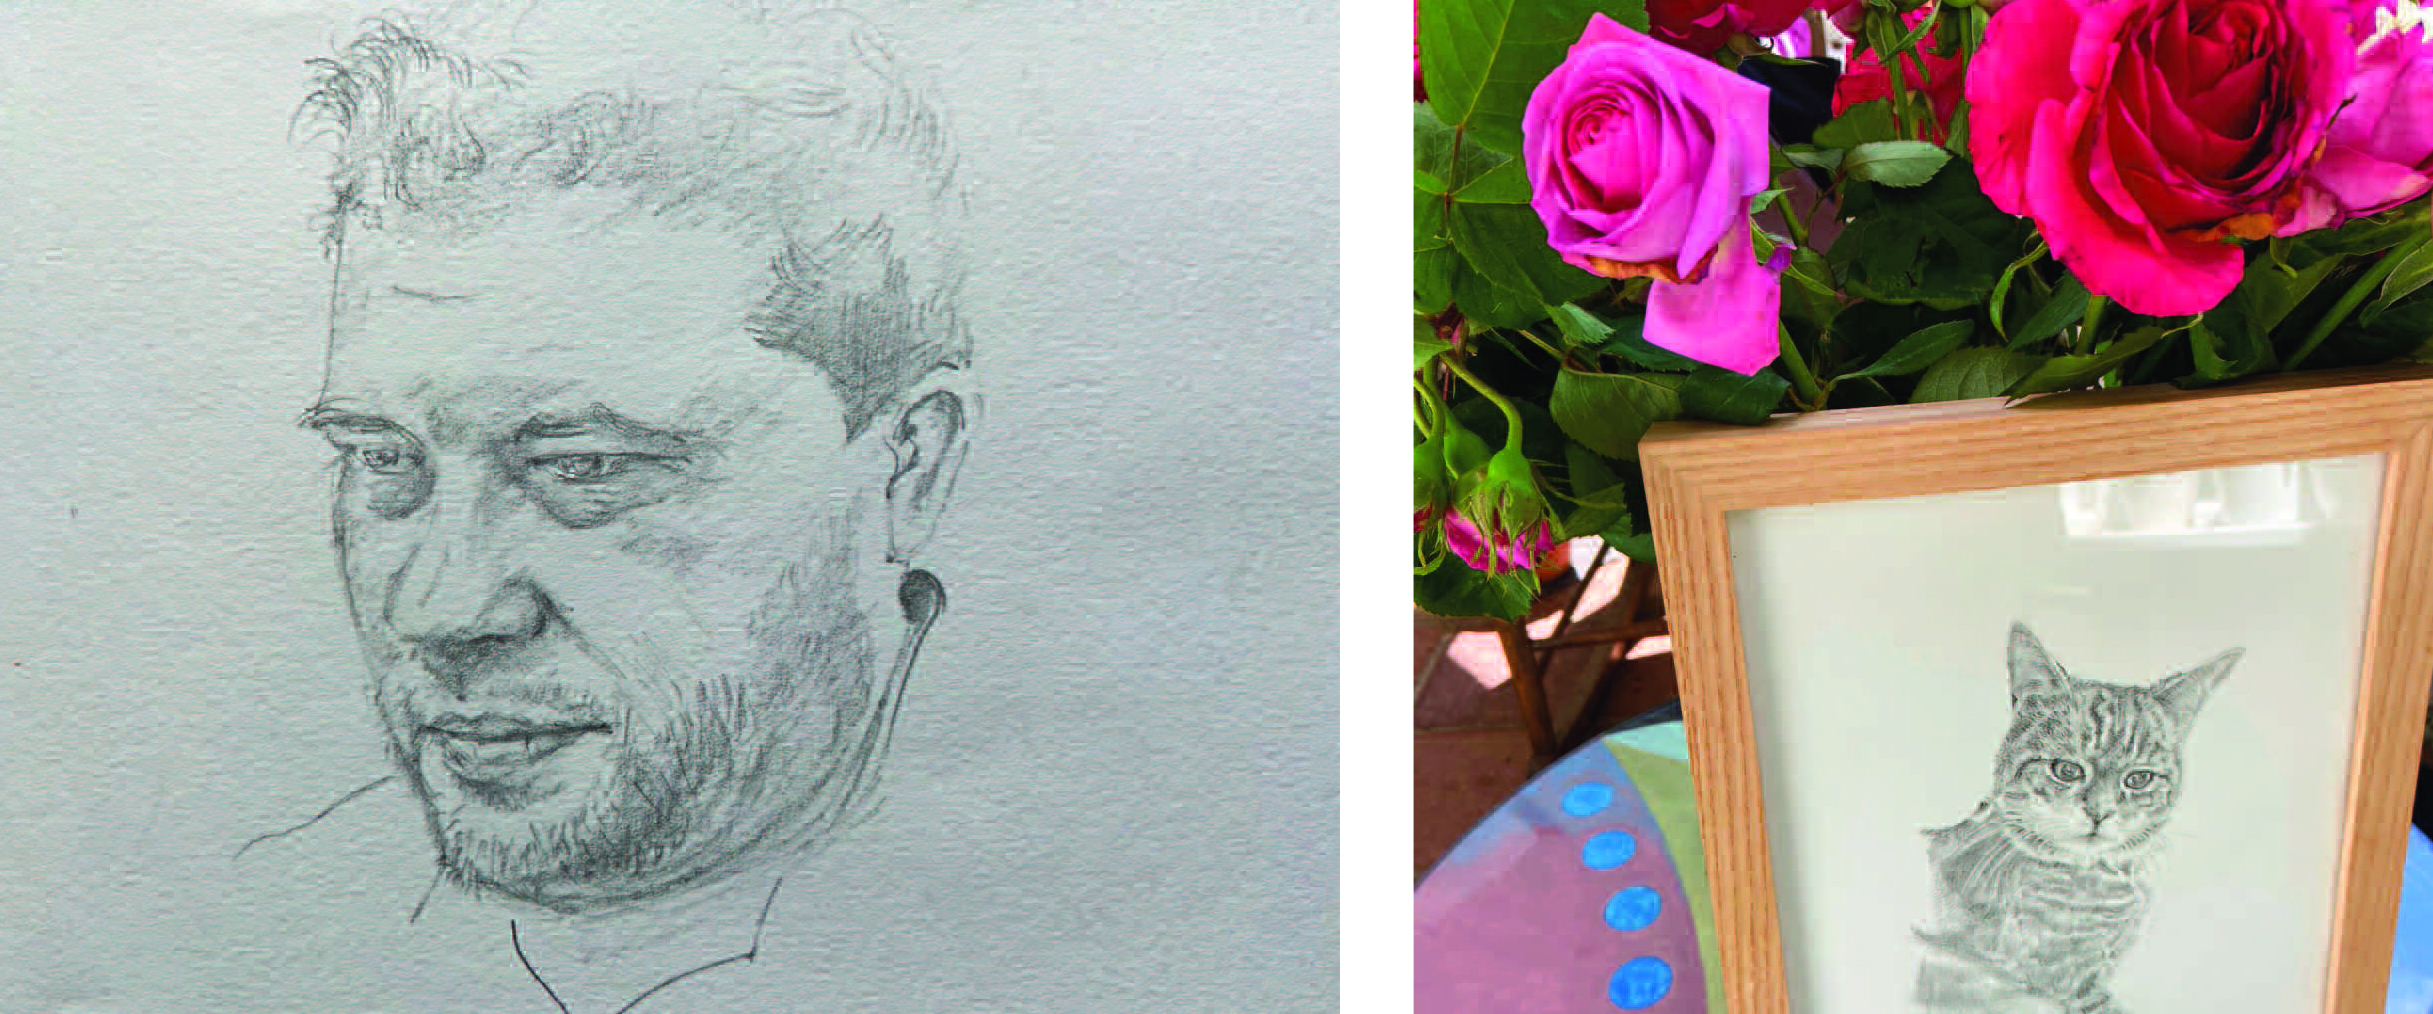 Above: A sketch by Paul of his colleague Adam Osbourne and one of a good friend's cat.